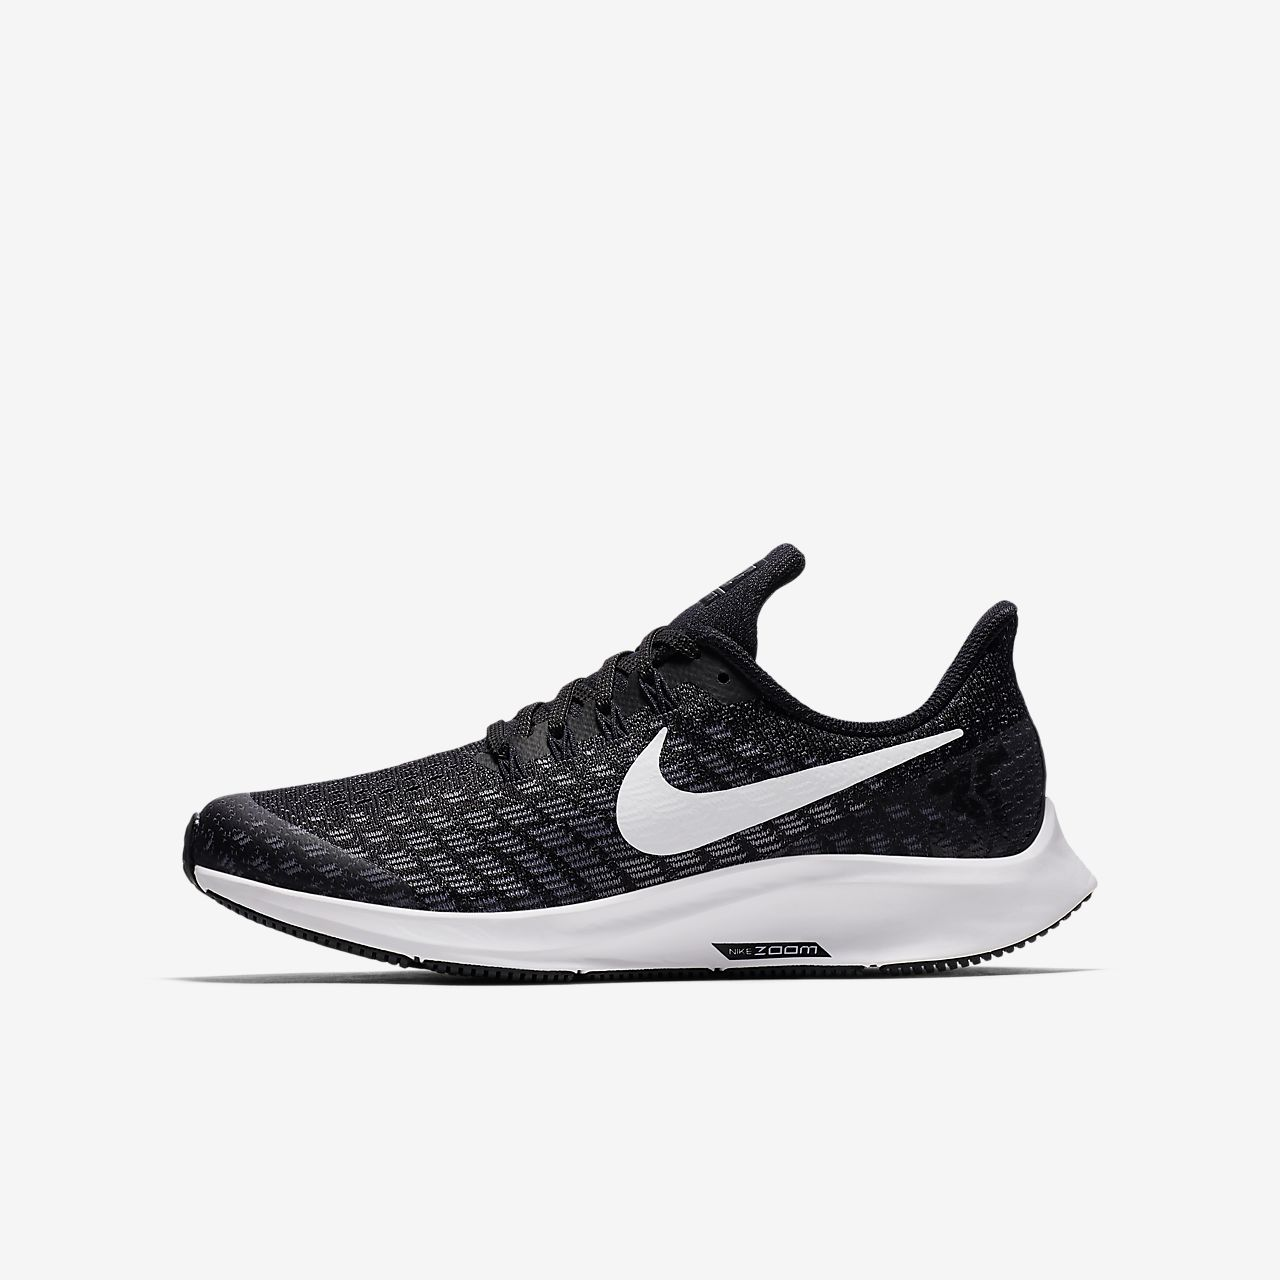 Nike Air Pegasus 35 Chaussures De Course Zoom IIAAp